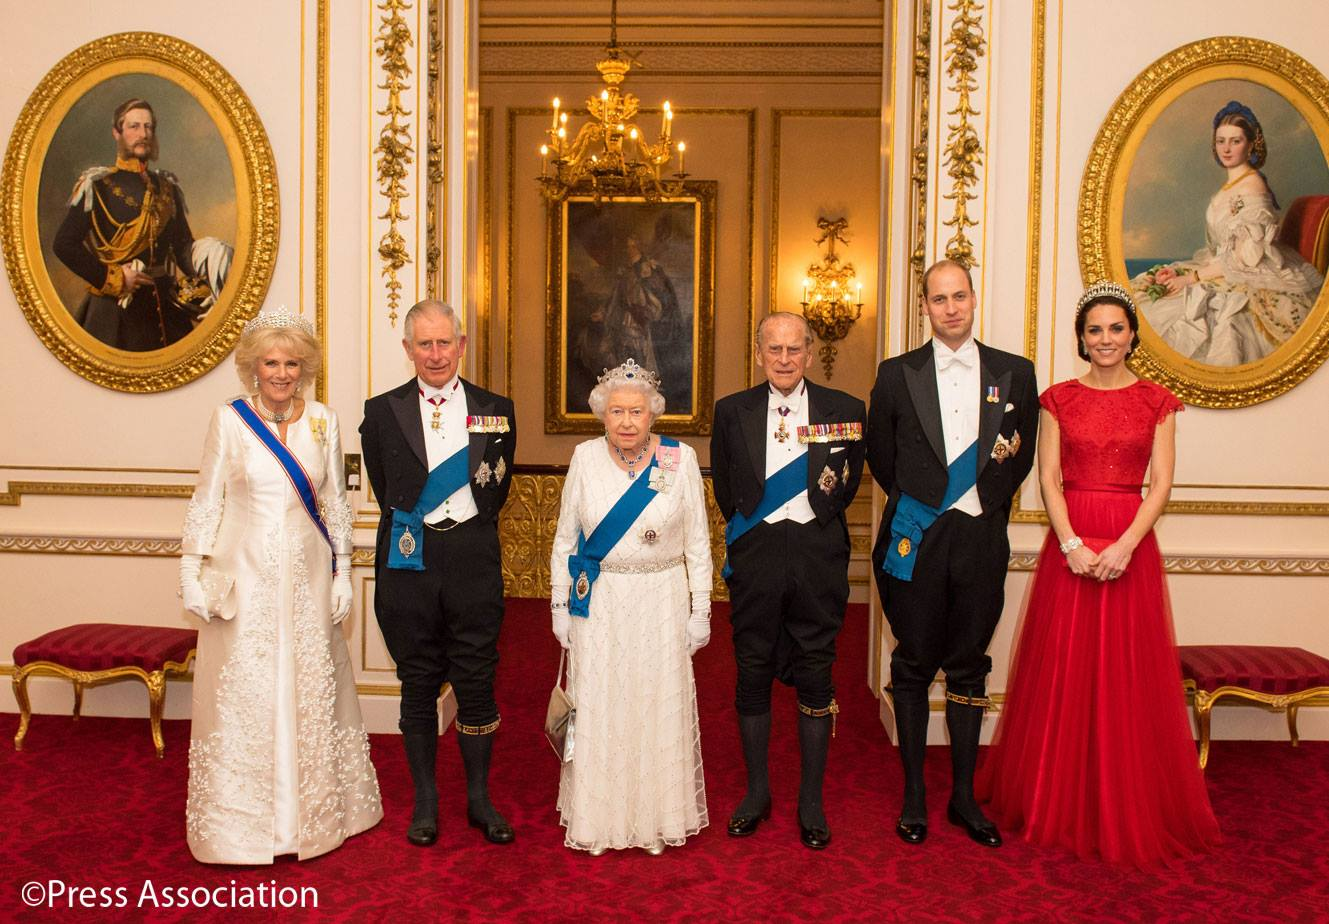 Dîner diplomatique à Buckingham